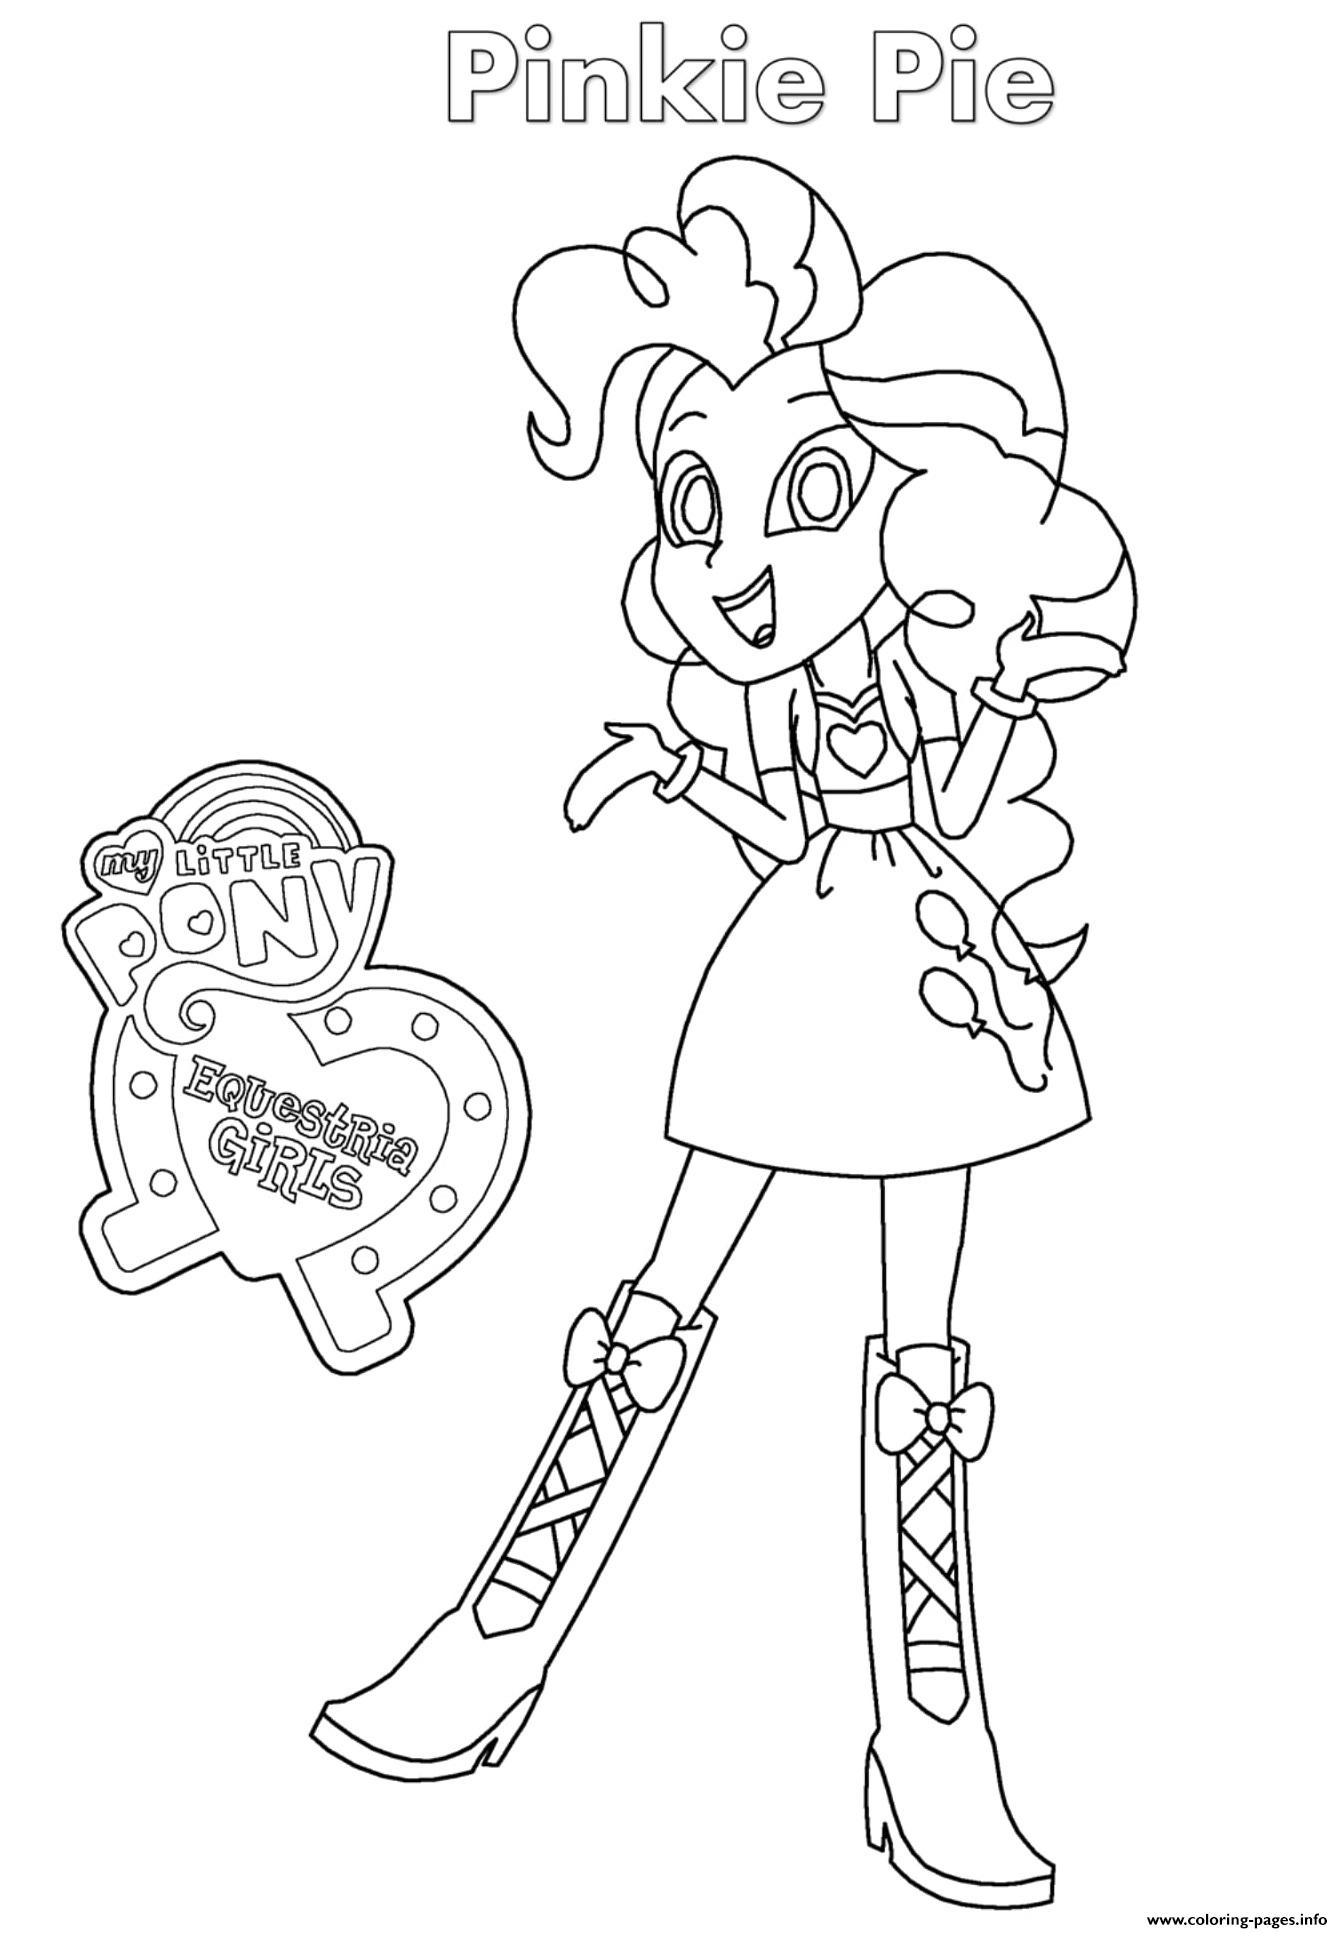 Pinkie Pie Coloring Page : pinkie, coloring, Equestria, Girls, Pinkie, Coloring, Pages, Printable